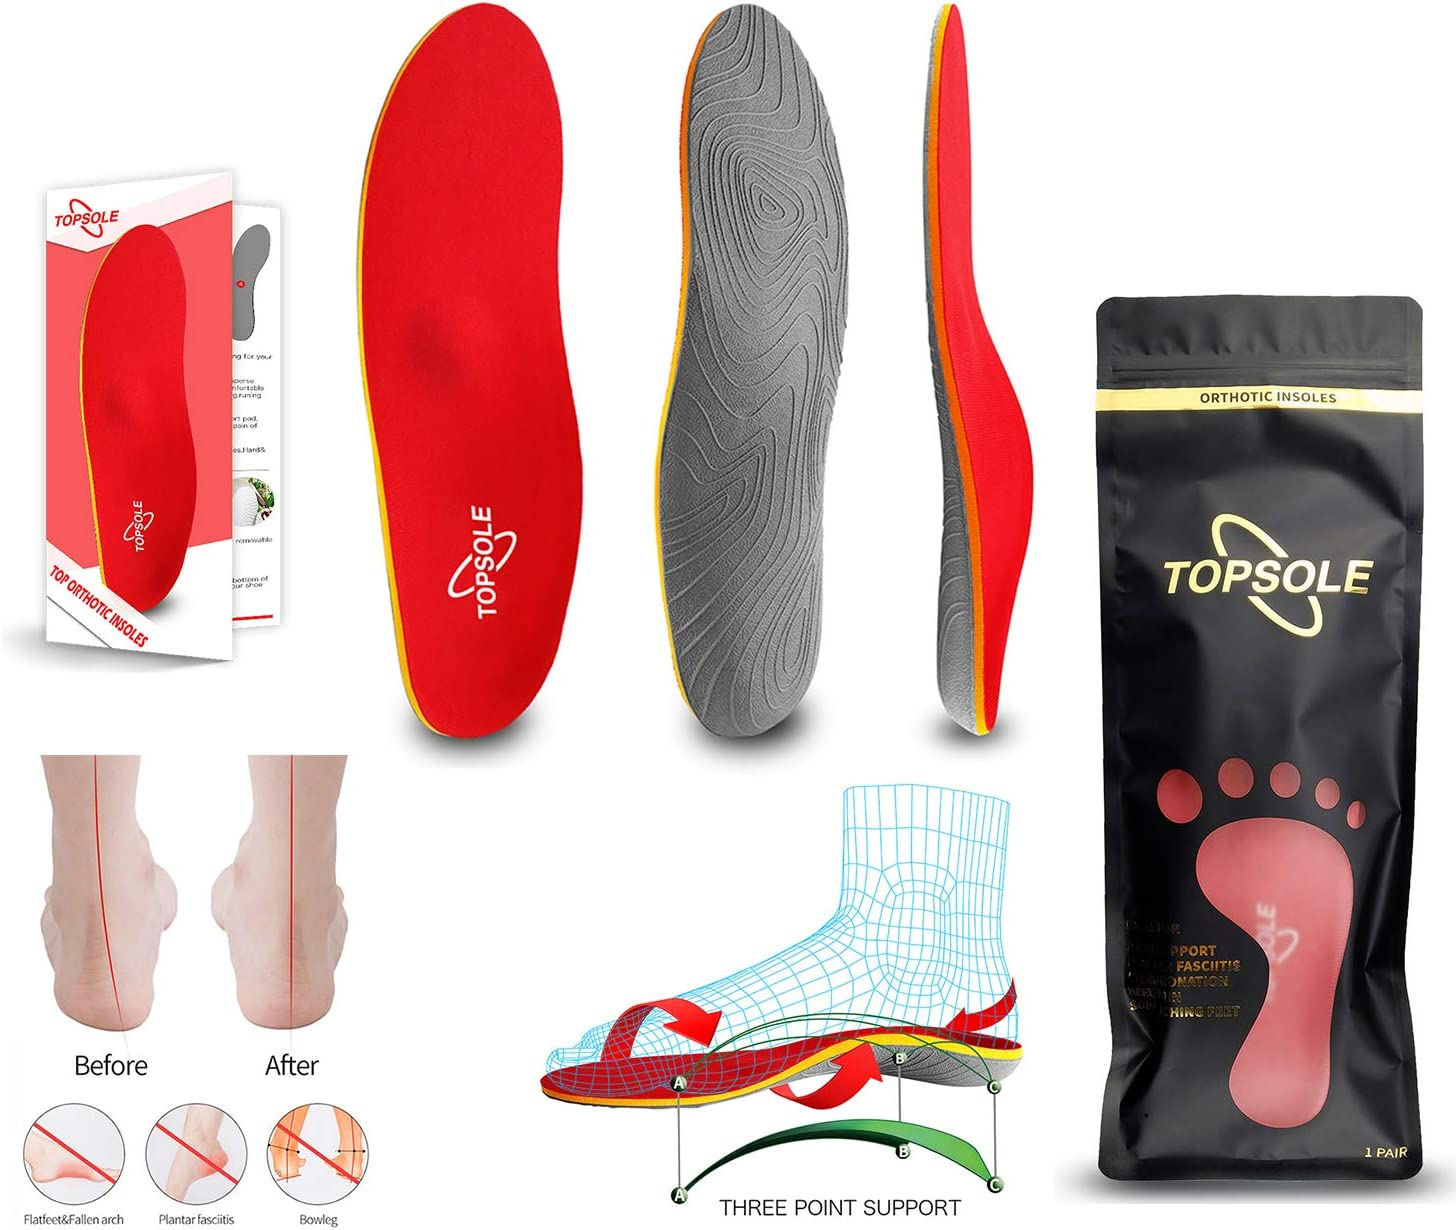 Topsole Flat Feet Metatarsal Orthotic Insoles Arch Support Full Length Inserts Metatarsal Pinnacle Plus for Metatarsalgia, Plantar Fasciitis, Heel Pain, Big Toe, Pain Forefoot Pain: Health & Personal Care